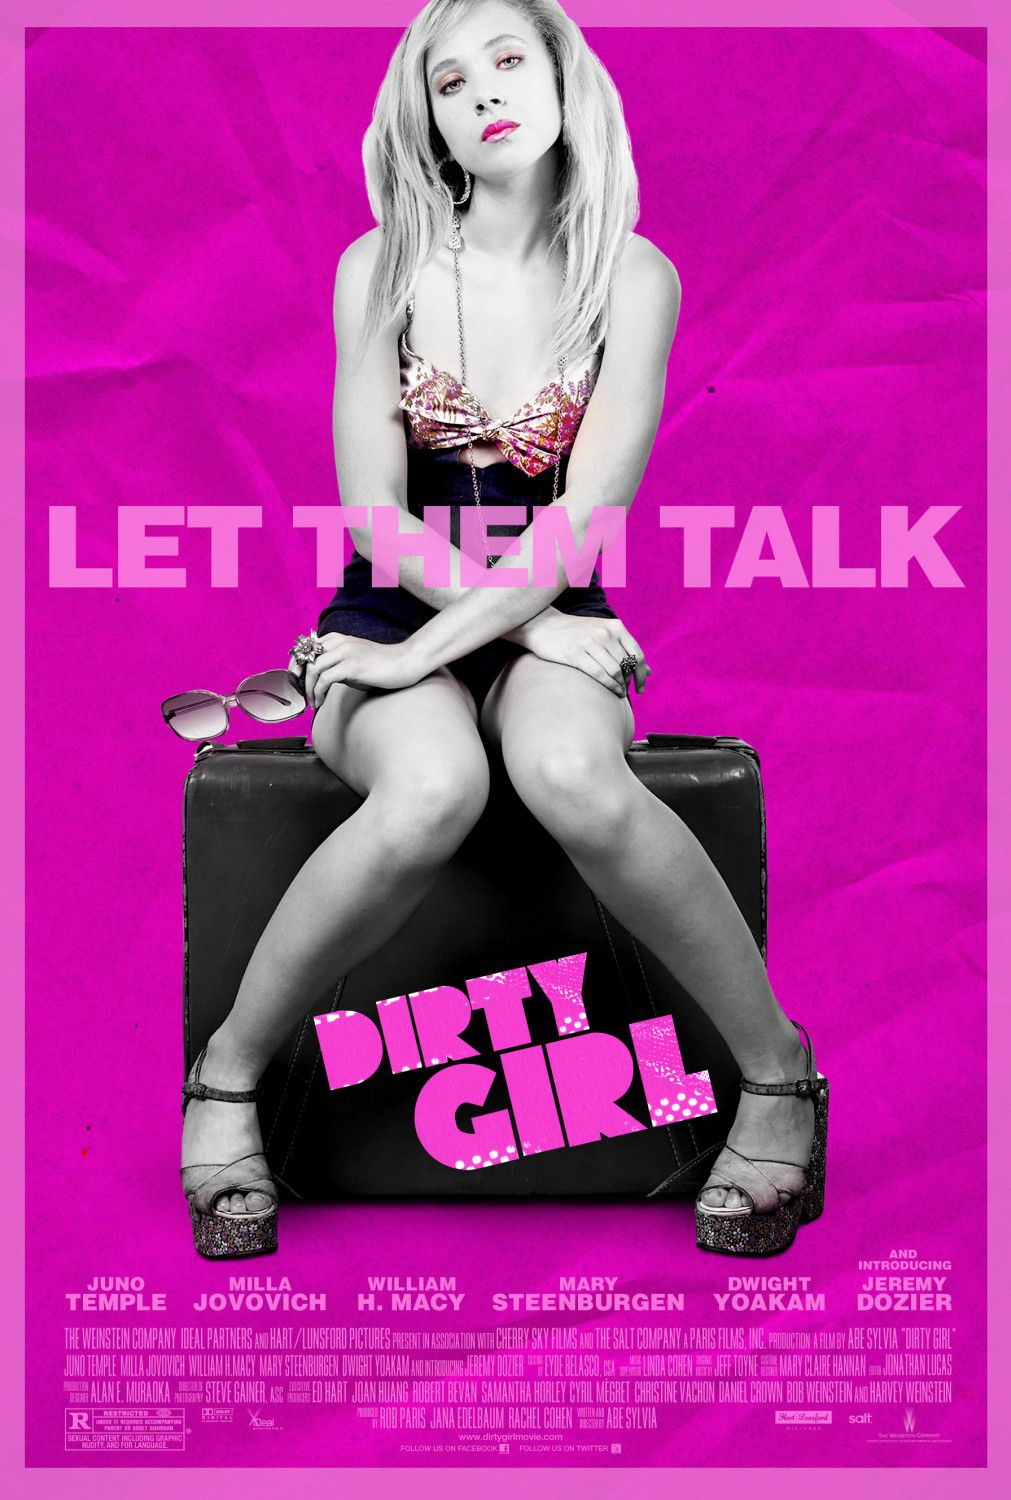 Dirty Girl - let them talk - film poster